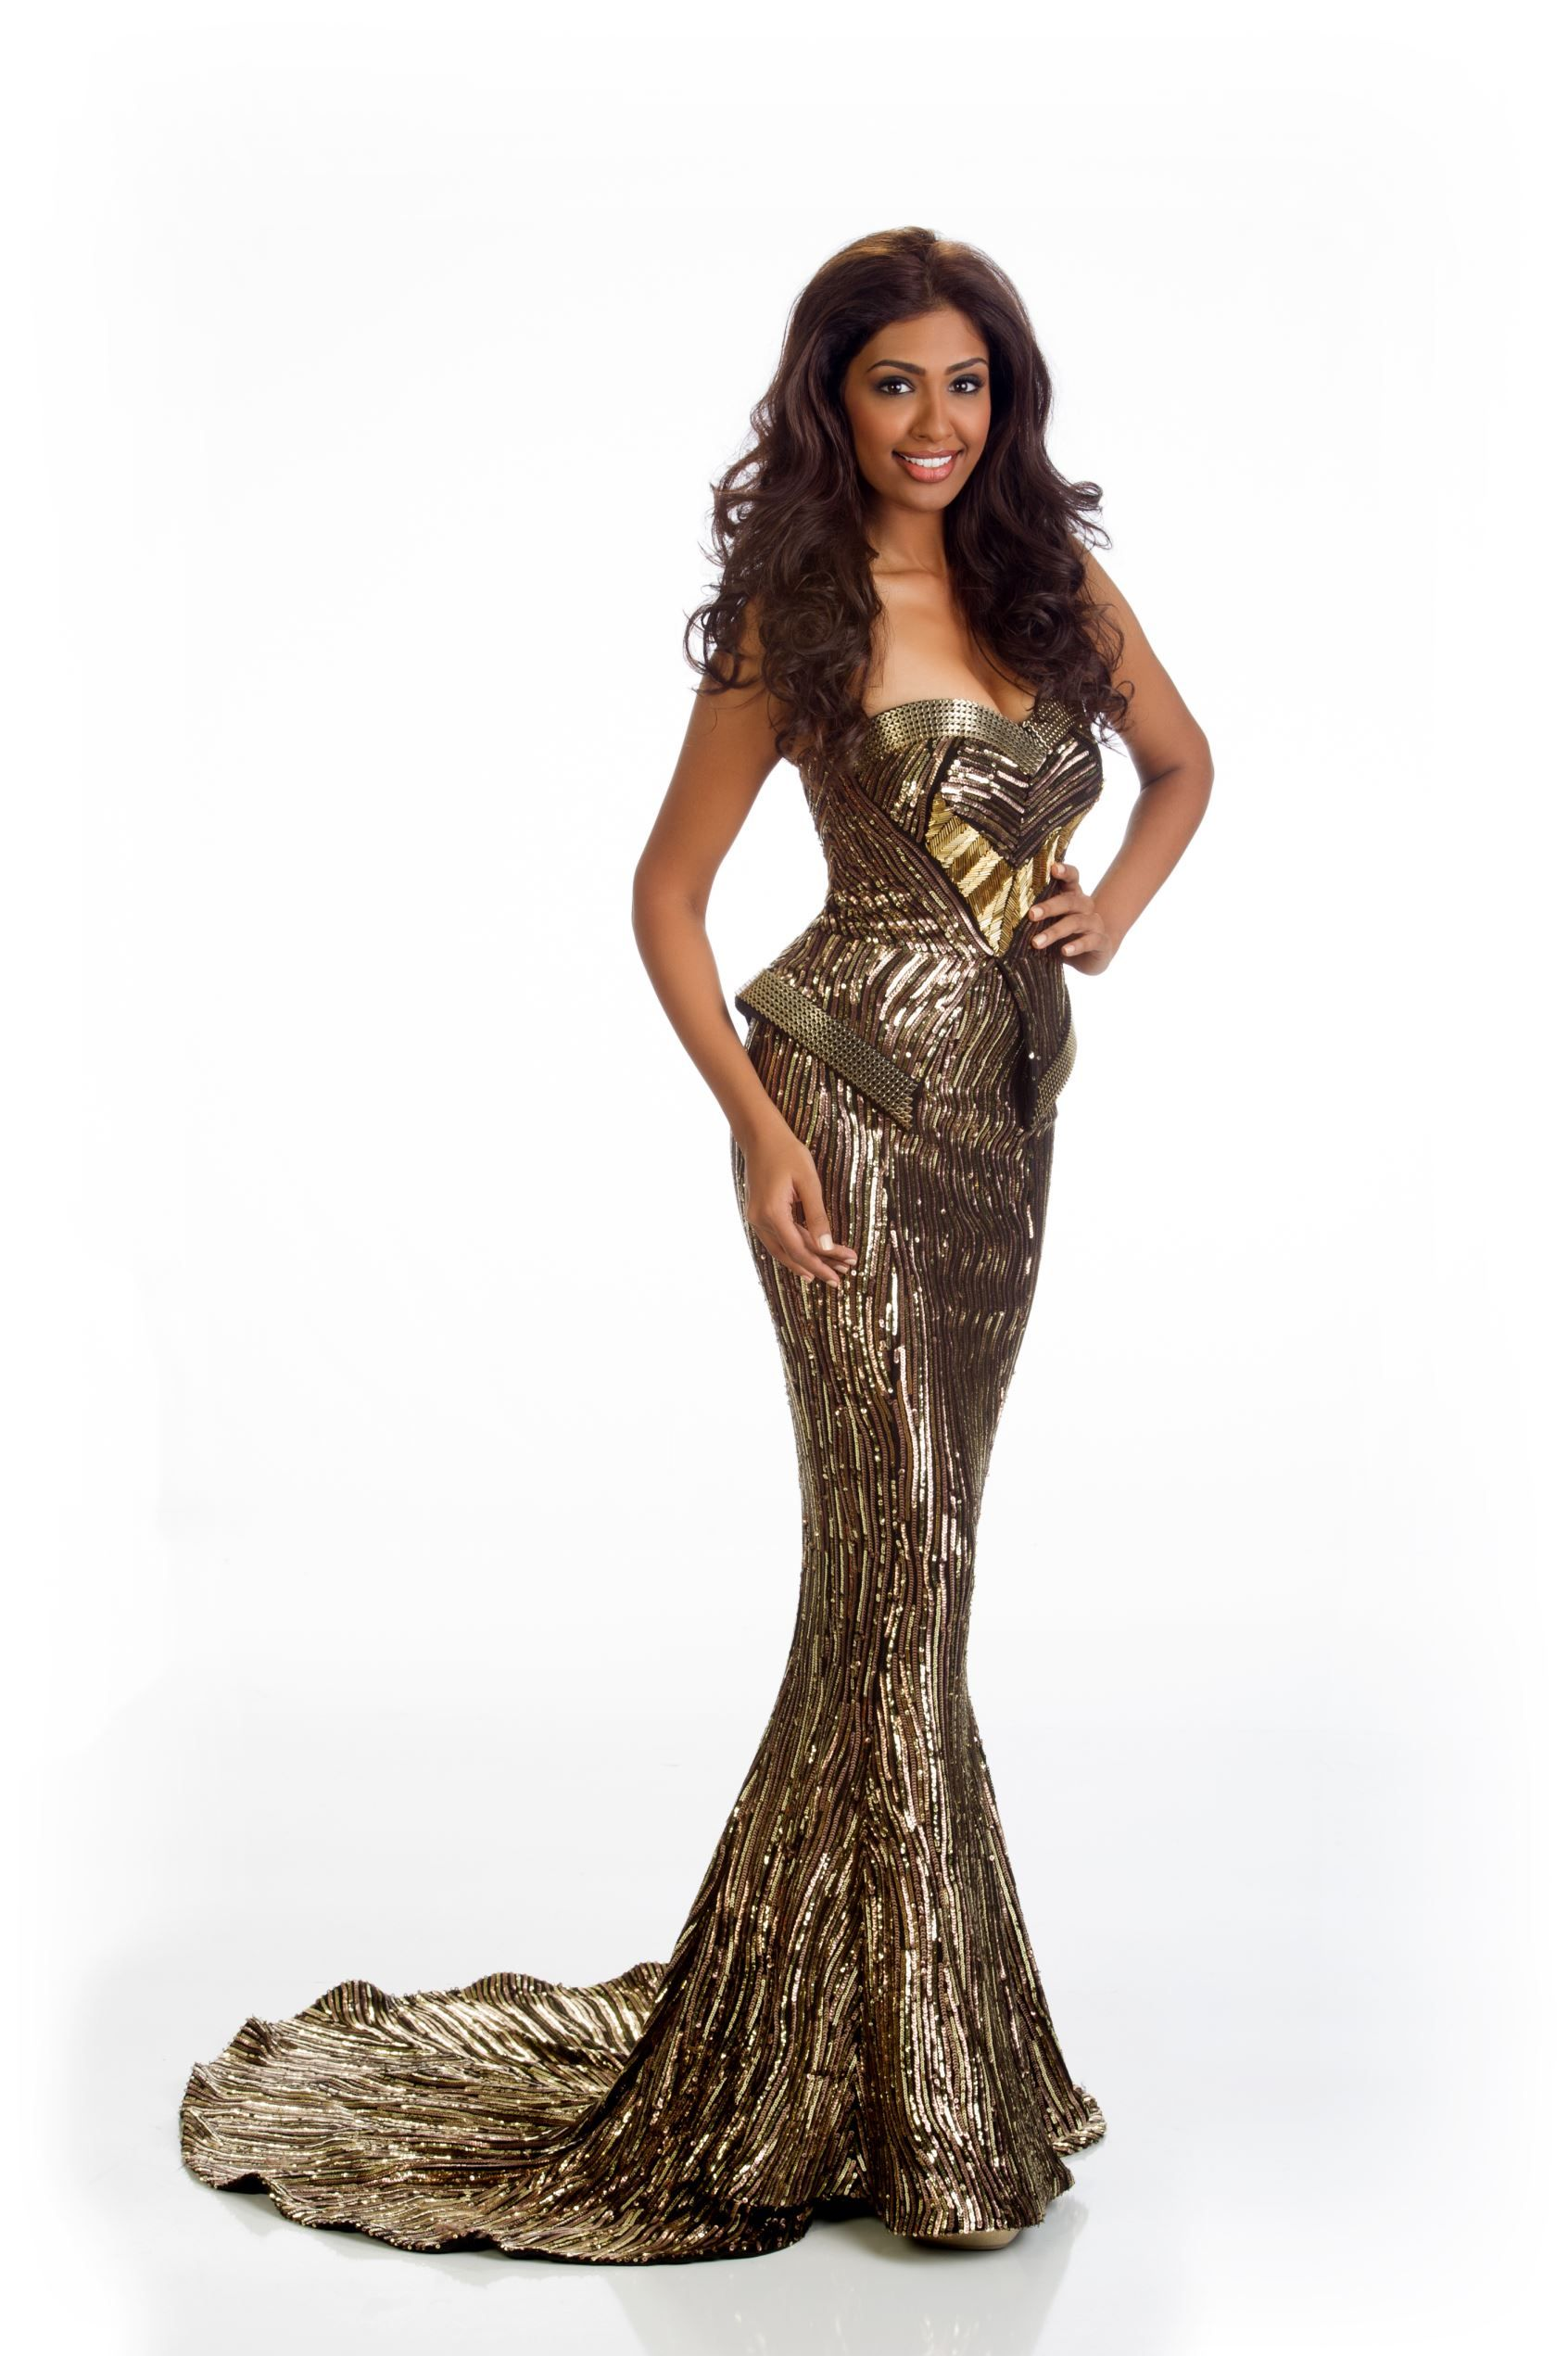 Sabrina Beneett, Miss Malaysia, strikes a pose in this unique black and gold gown.